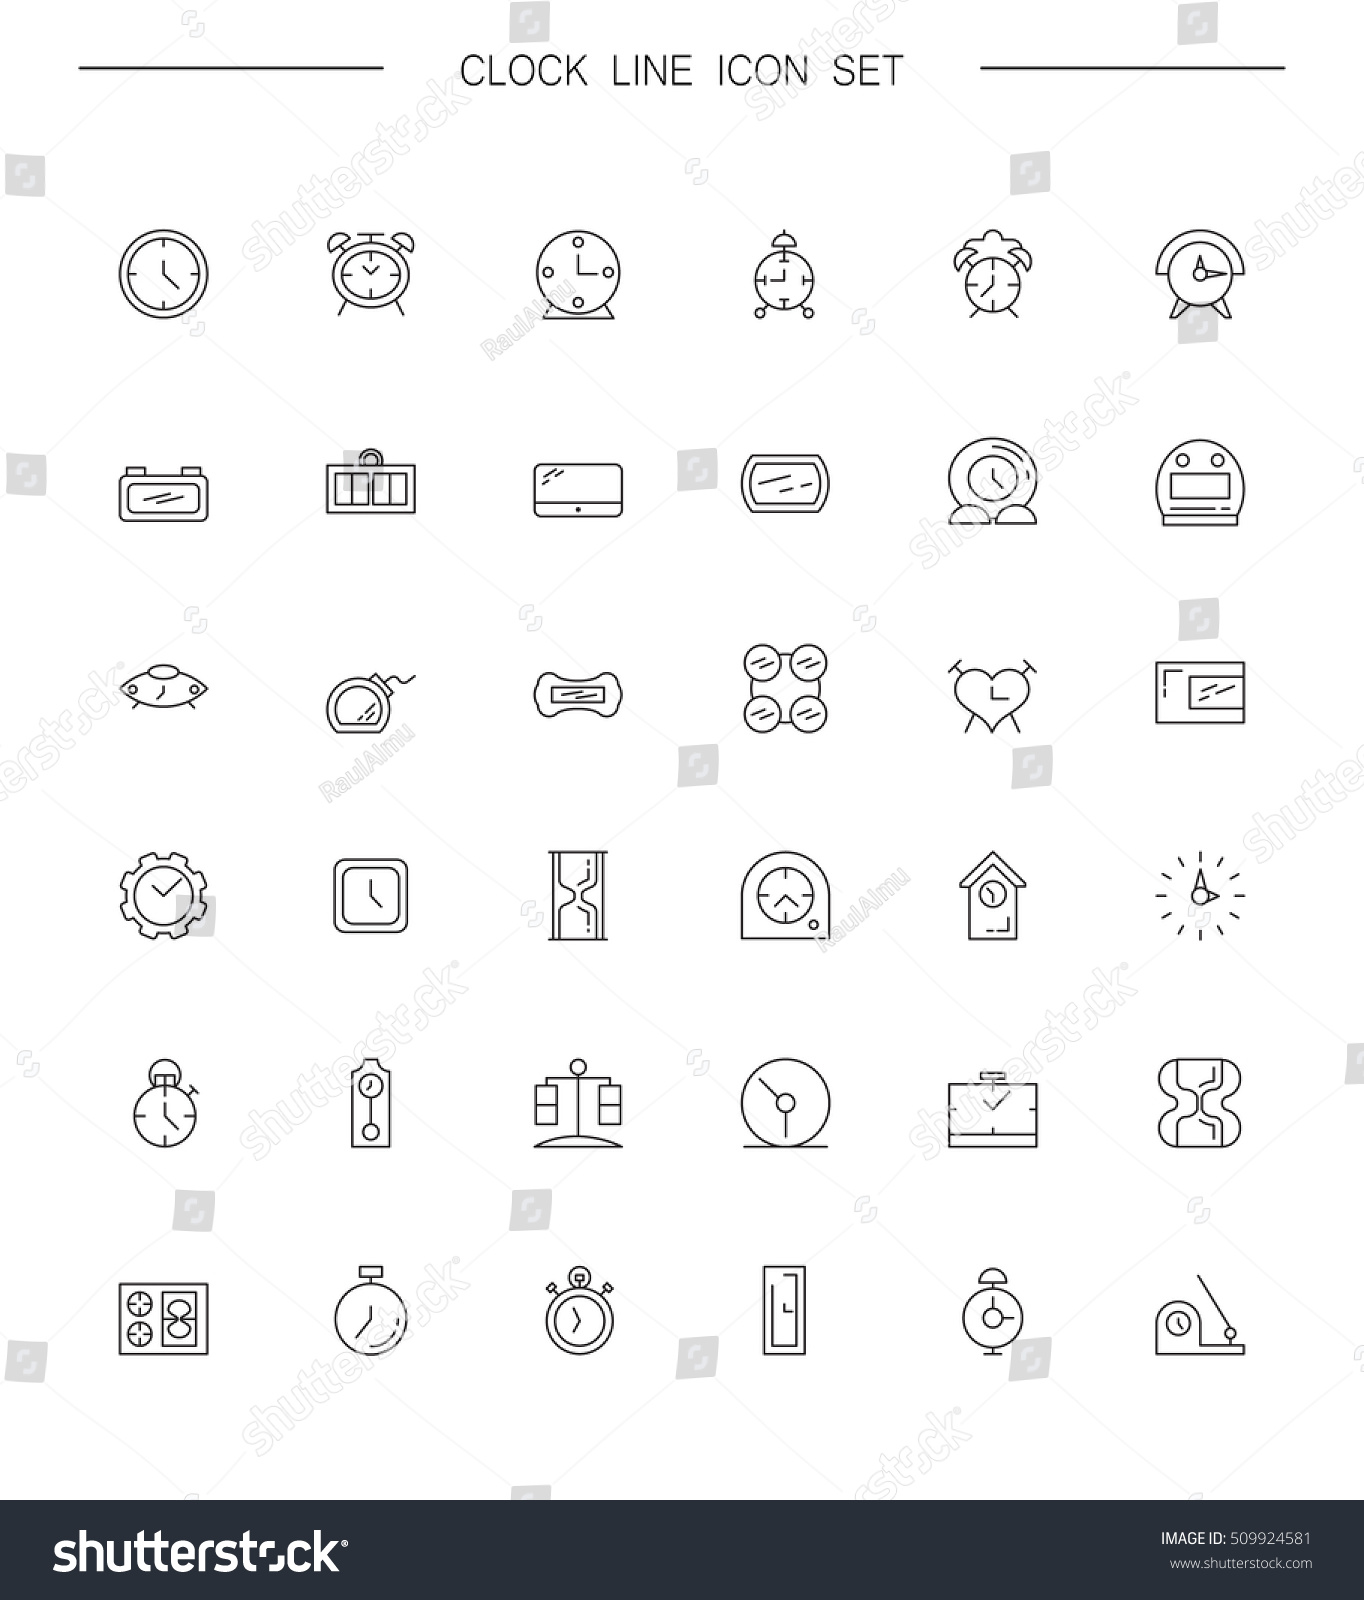 Clock line icon wt vector high stock vector 509924581 shutterstock vector high quality outline pictograms of clock signs of element buycottarizona Image collections